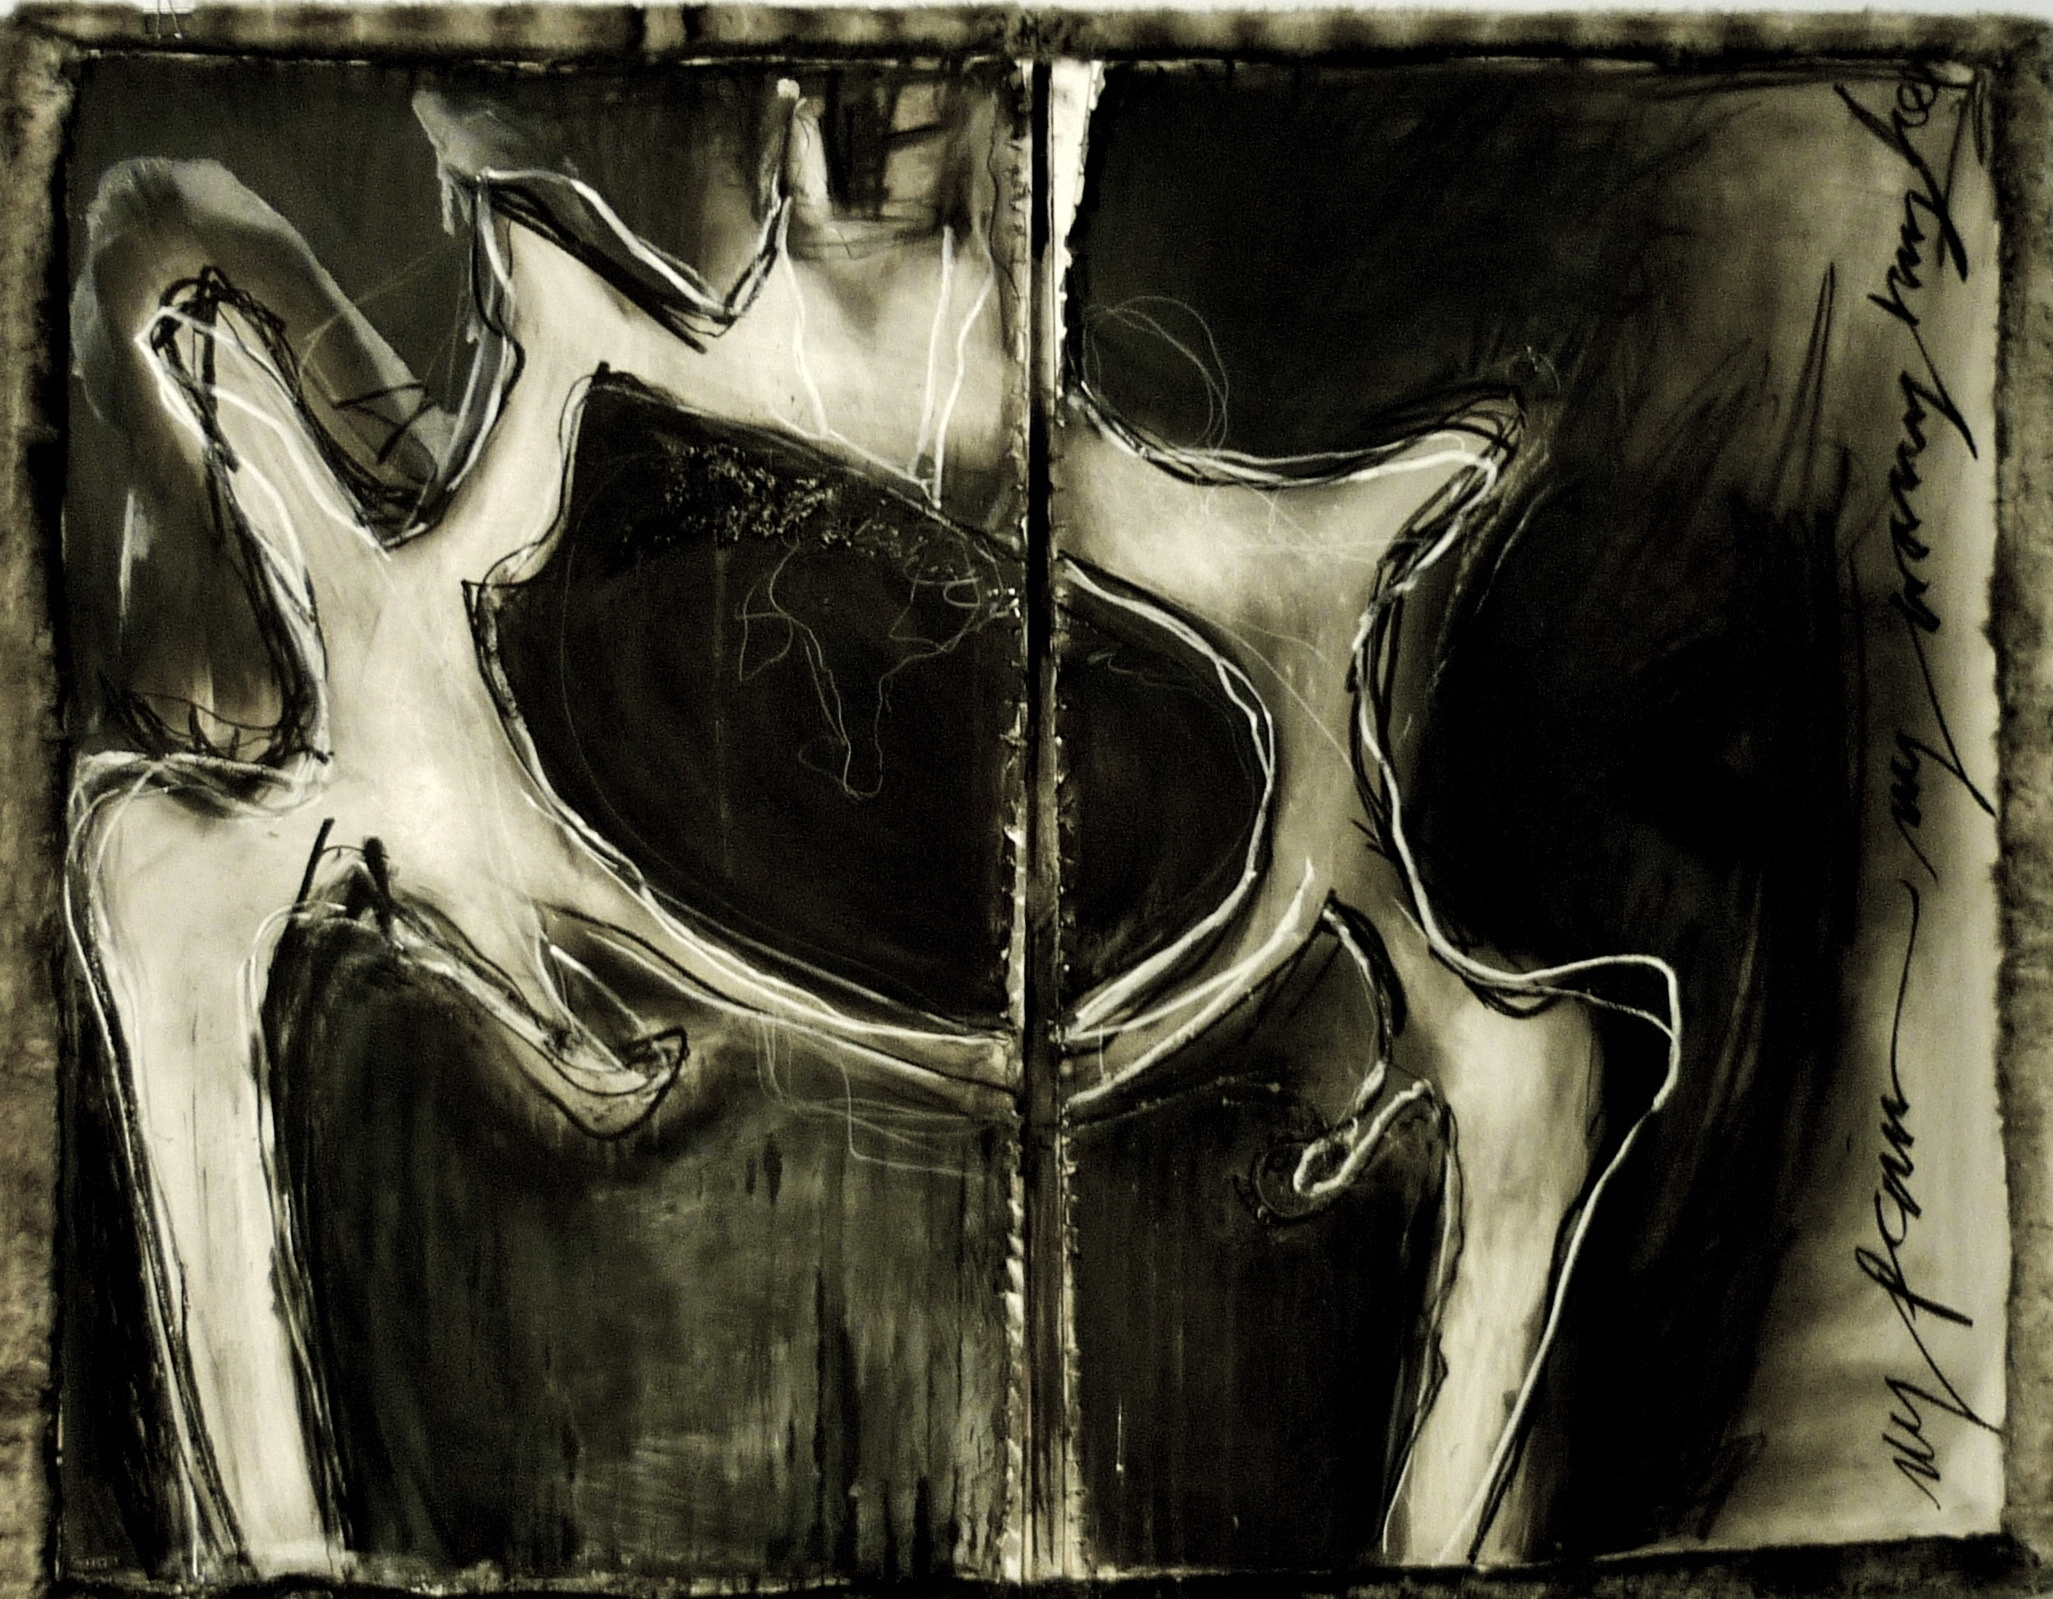 The Magdalene Book, 48 in. x 68 in., charcoal, conte, soap and faux fur on cotton rag paper, 2011